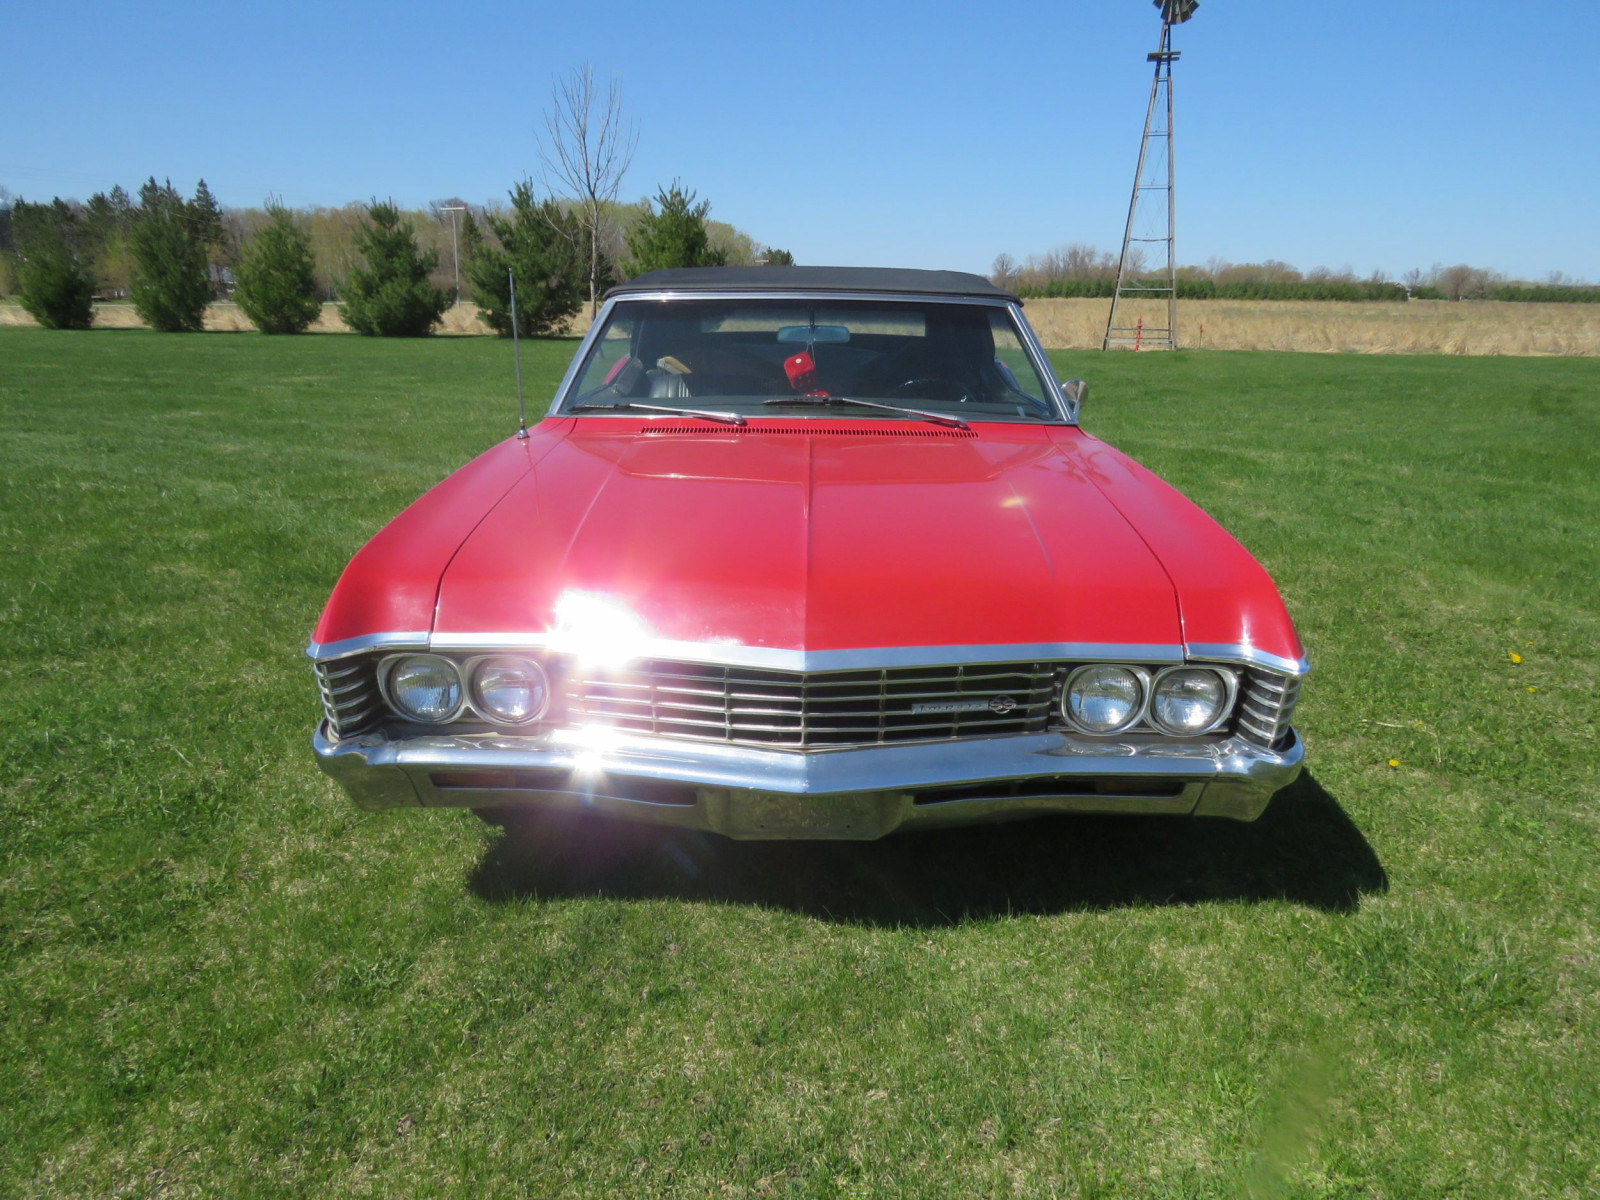 1967 Chevrolet Impala SS convertible - Image 2